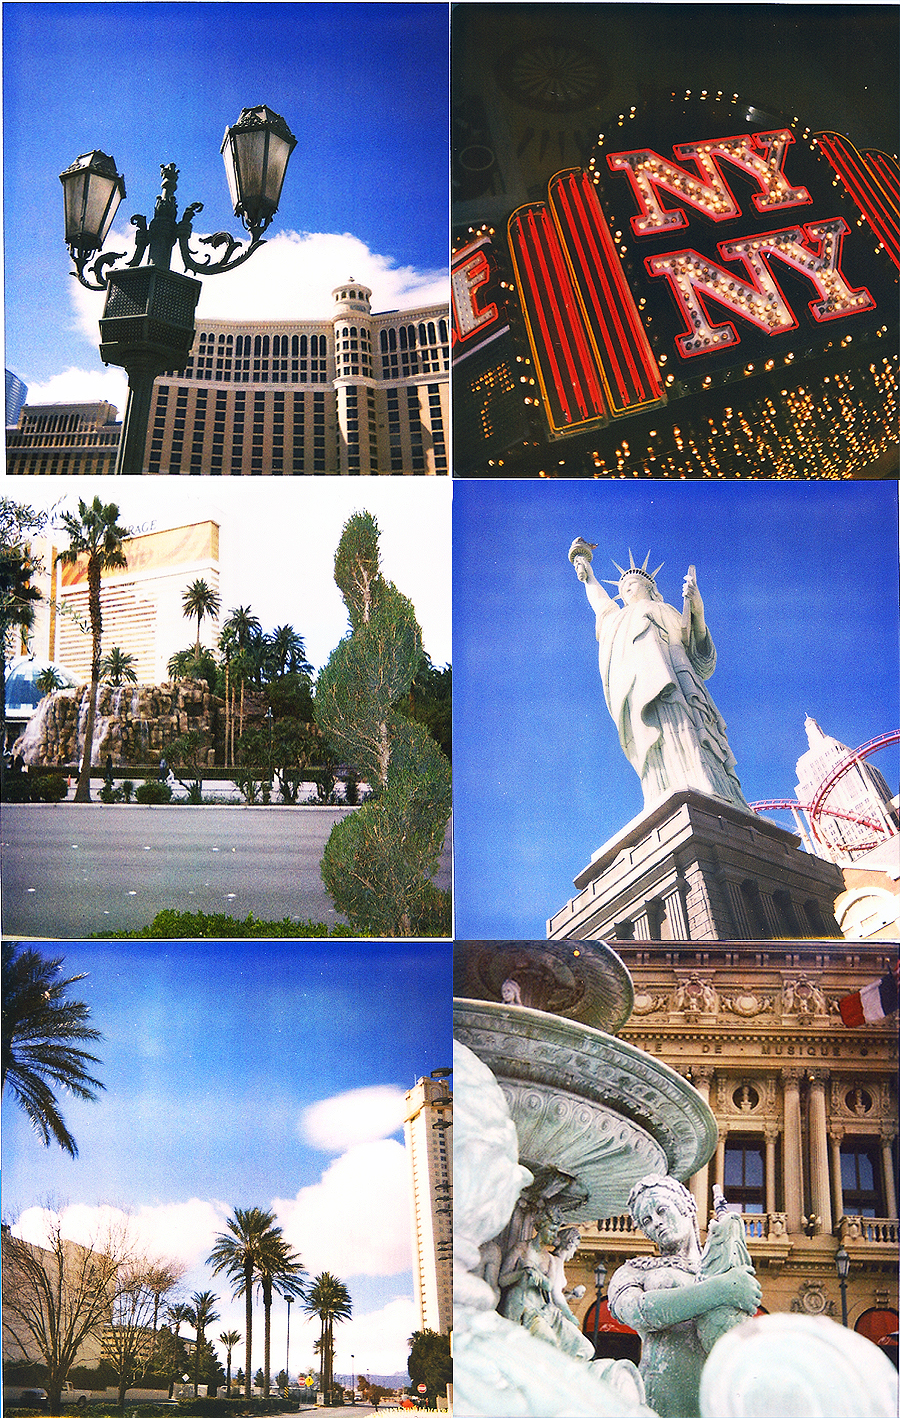 las vegas polaroid photo